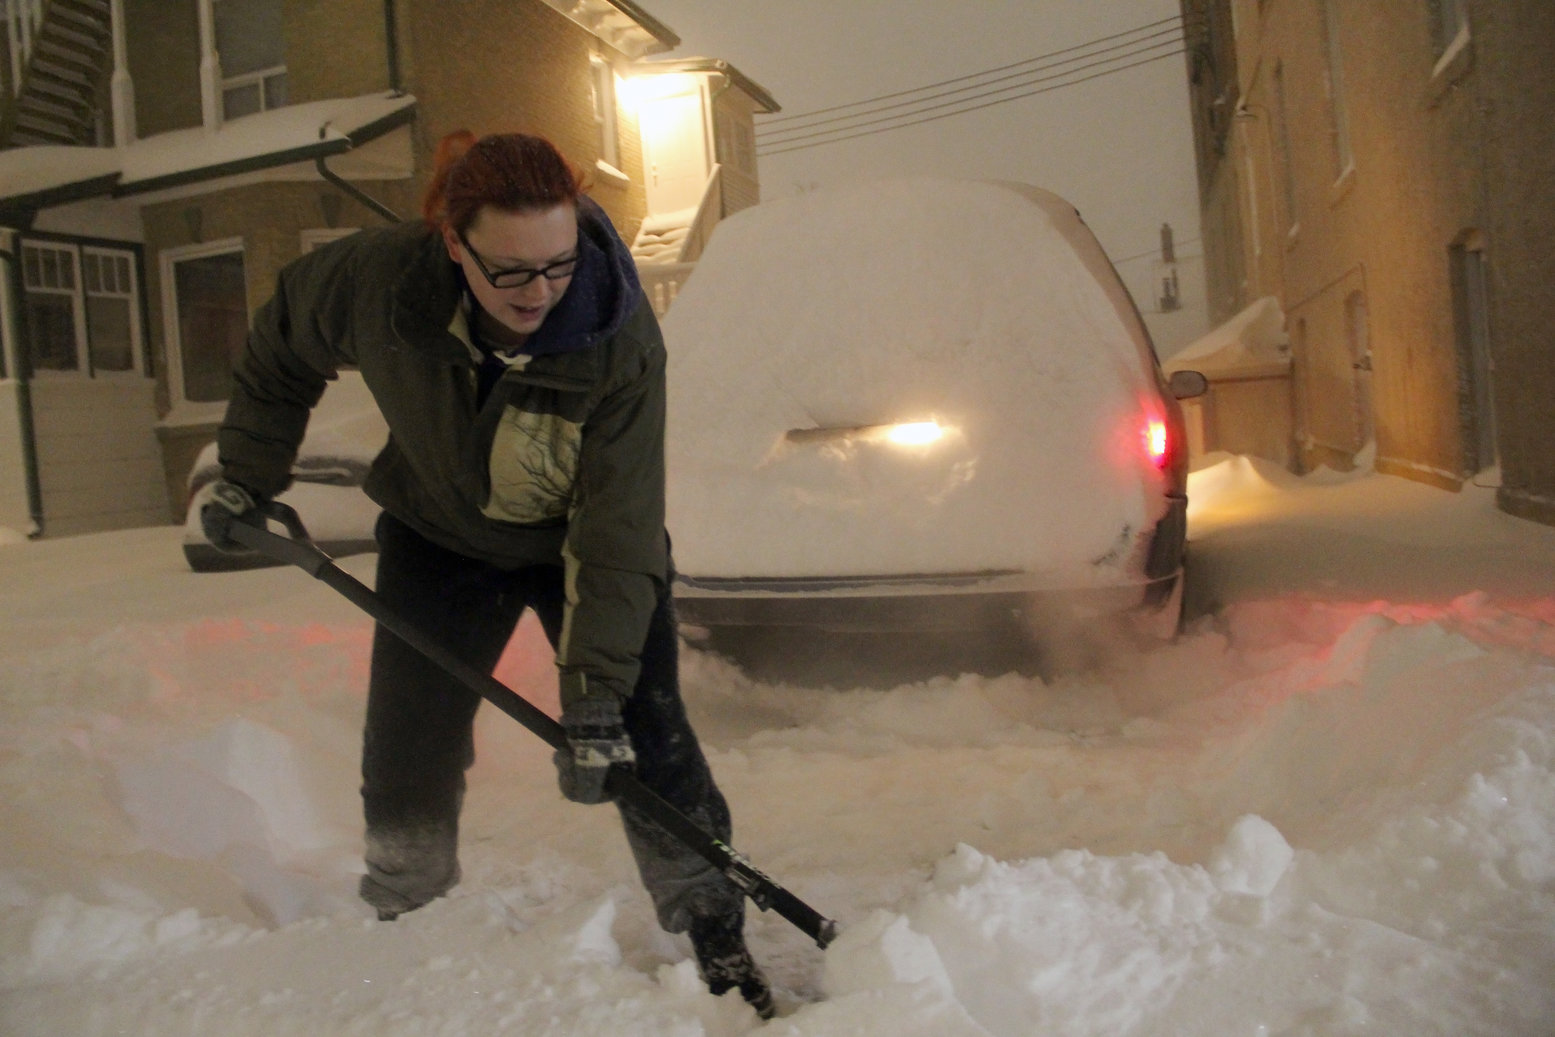 Kylie Black, 24, clears a path so her sister can get to work early Monday morning off of Lorne Avenue in Brandon. (Ian Froese/The Brandon Sun)